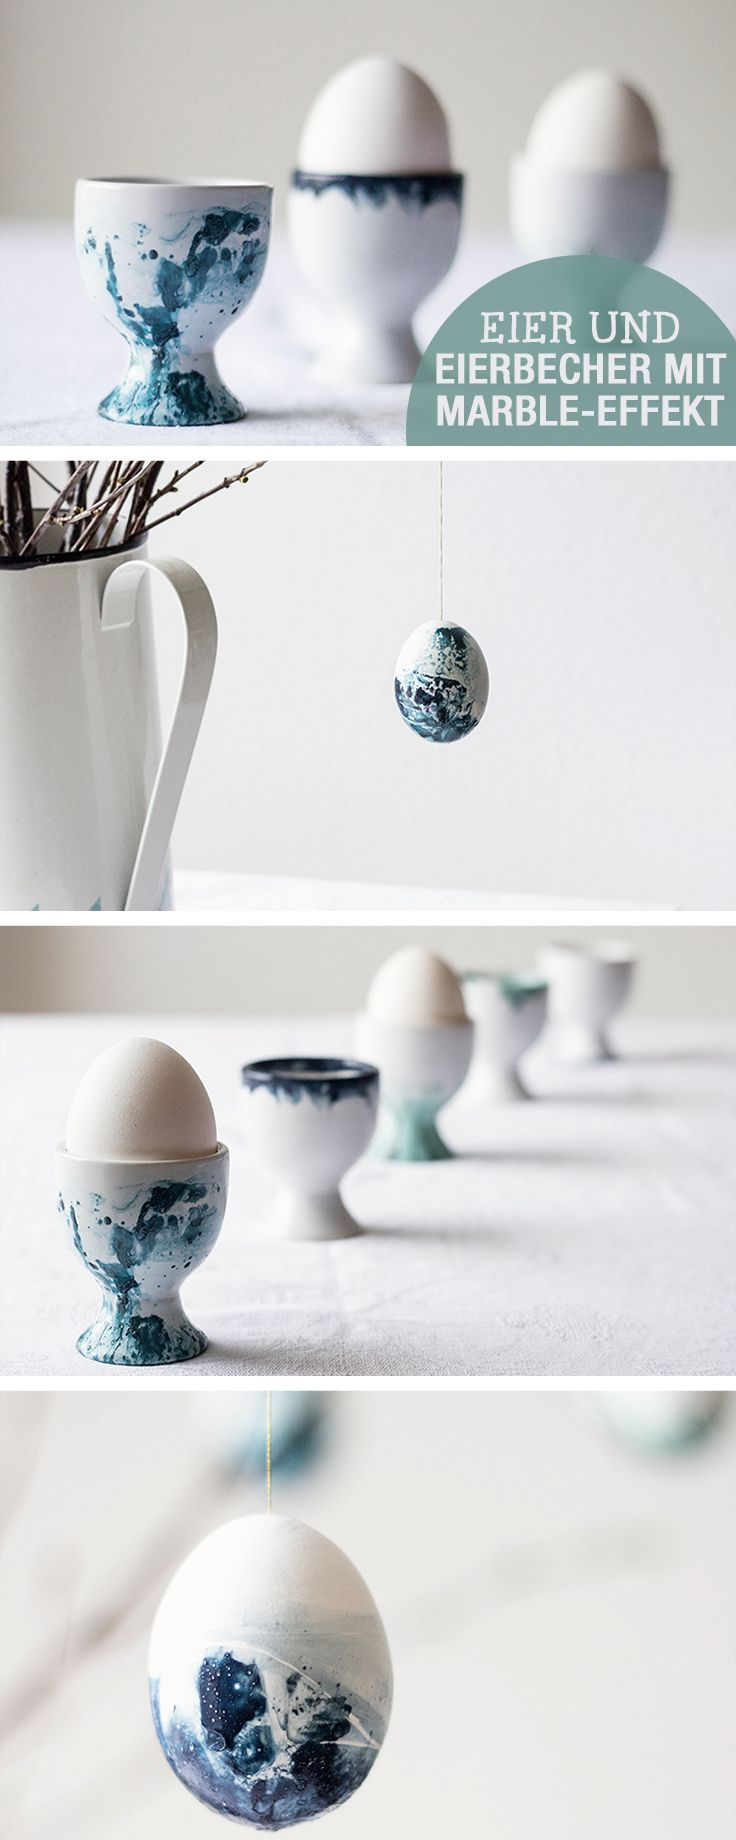 DIY- Anleitung für Eierbecher im Marmoreffekt, Marmor selbermachen / diy tutorial: egg holder with false marble effect via DaWanda.com